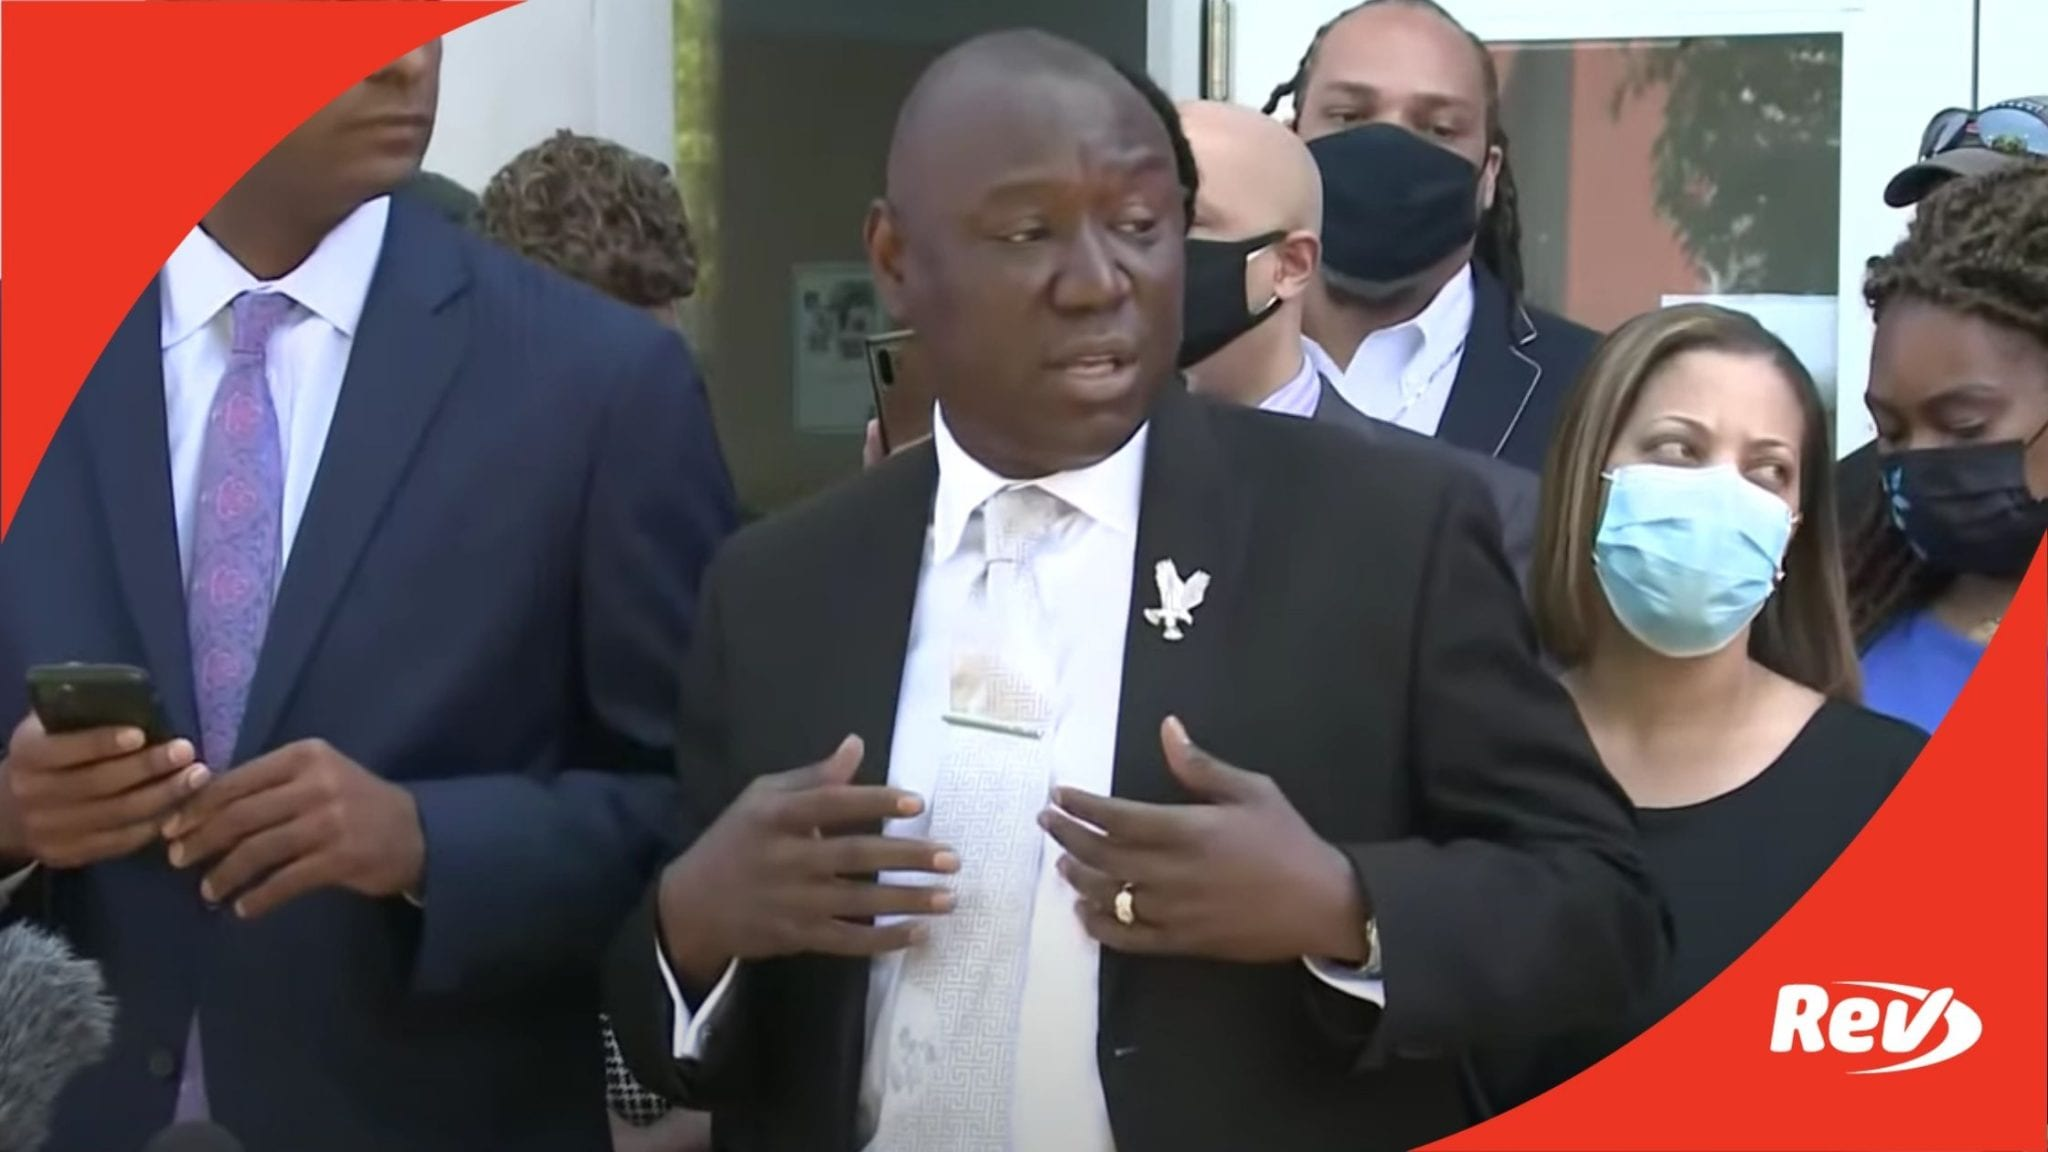 Ben Crump, Family of Andrew Brown Press Conference on Body Camera Footage Transcript April 26